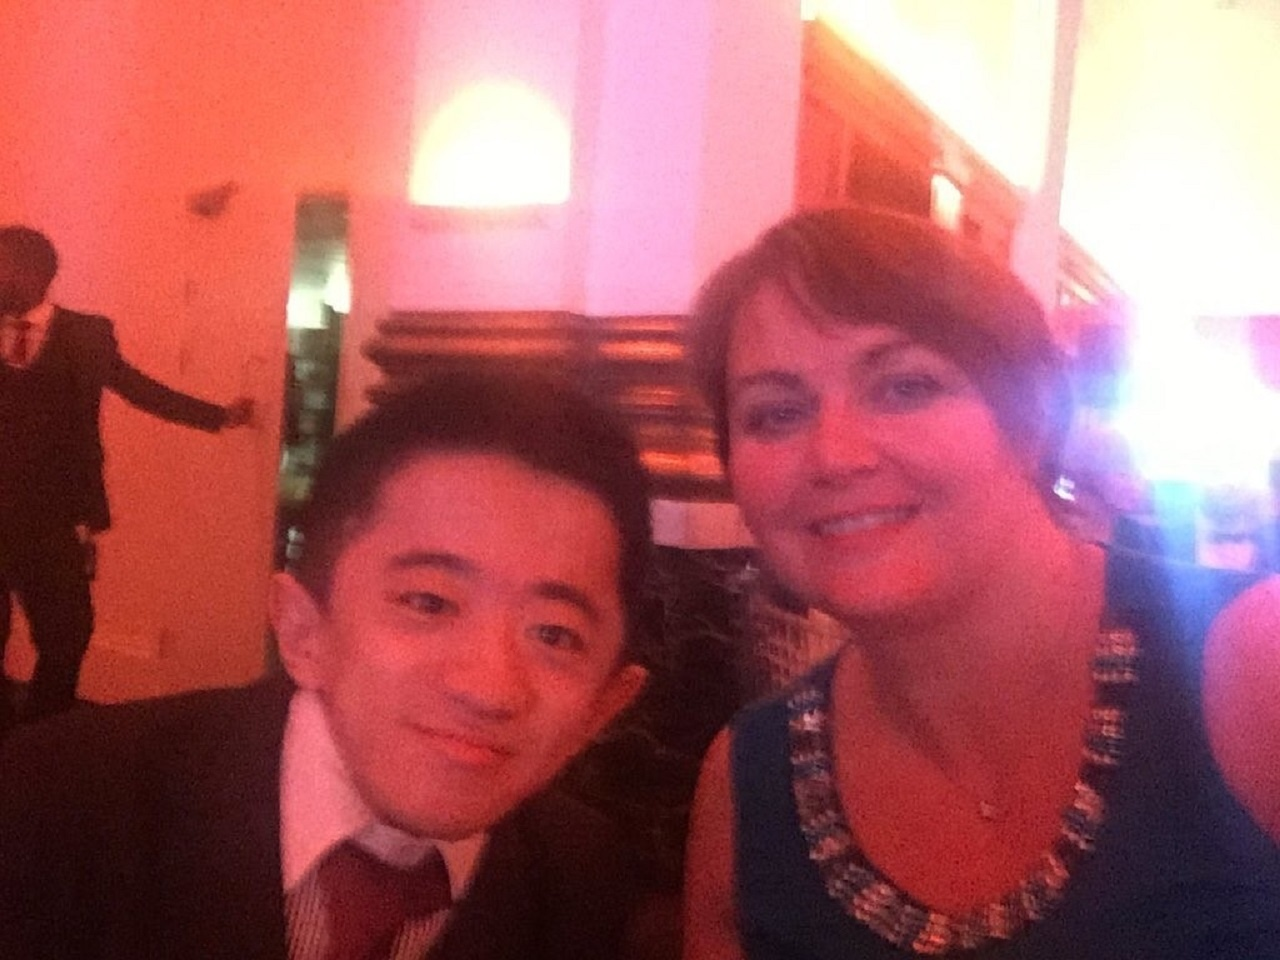 NCUK Alumnus & PIEoneer Awards winner Liu Daming with NCUK's Georgina Jones